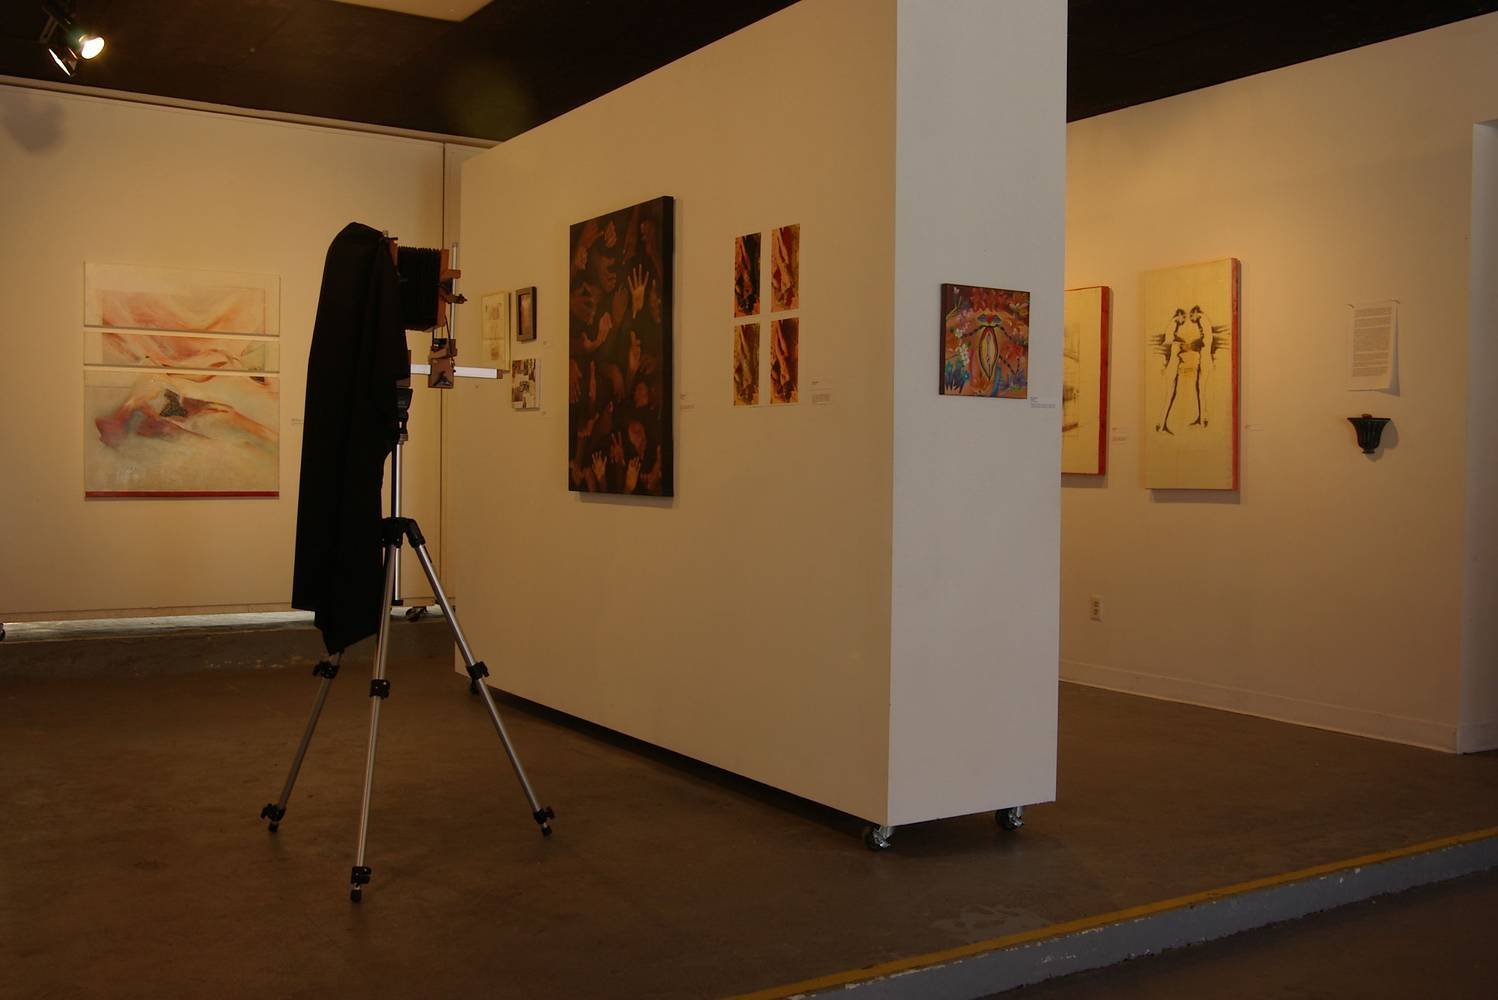 East View of Exhibition by Micky Renders